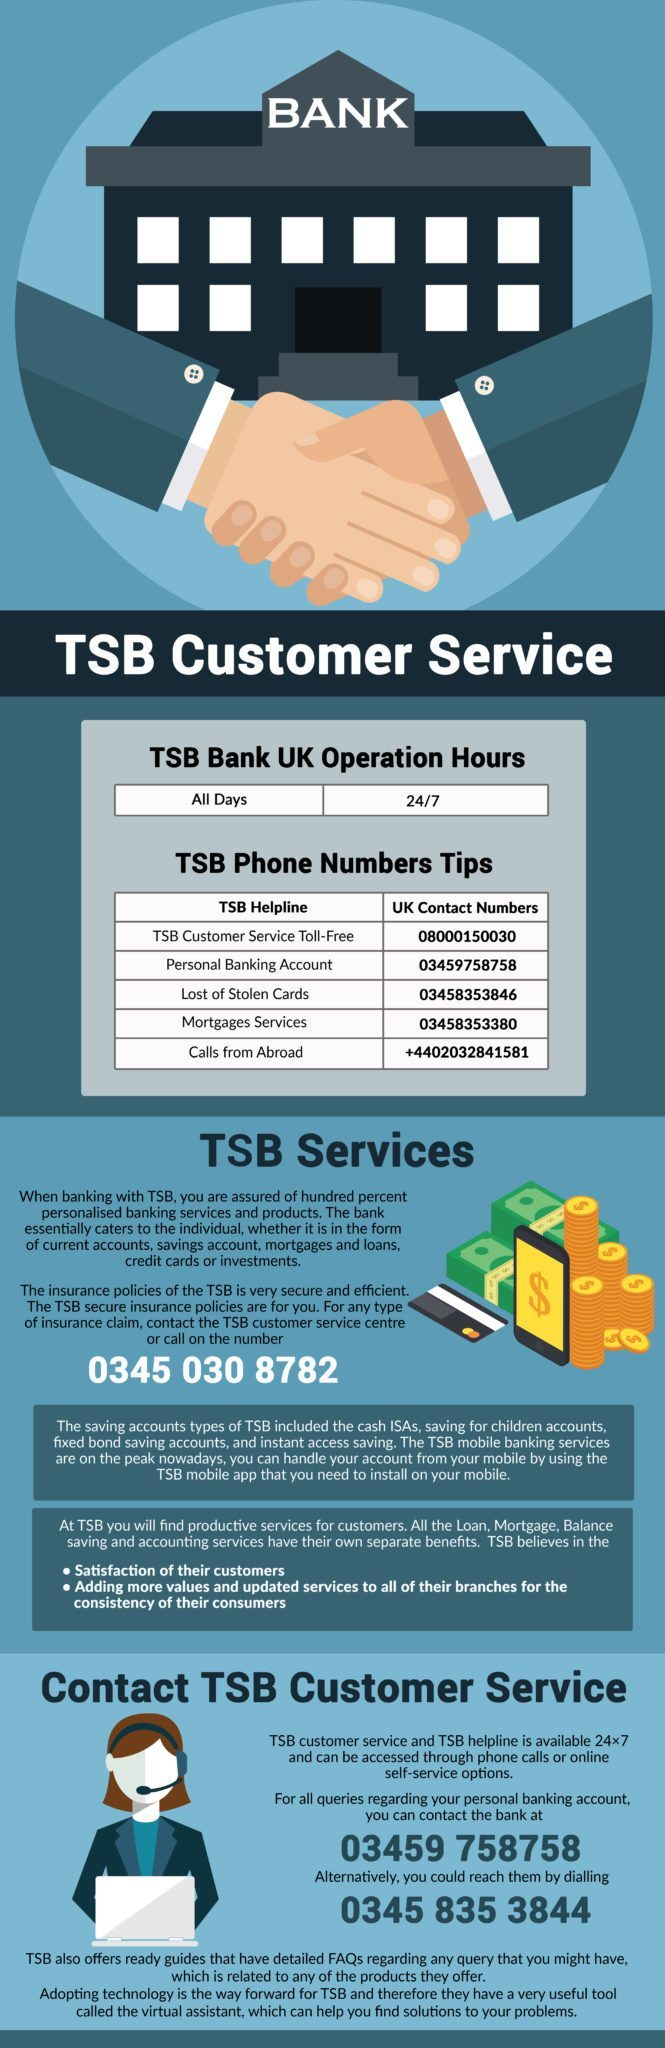 TSB Customer Service number